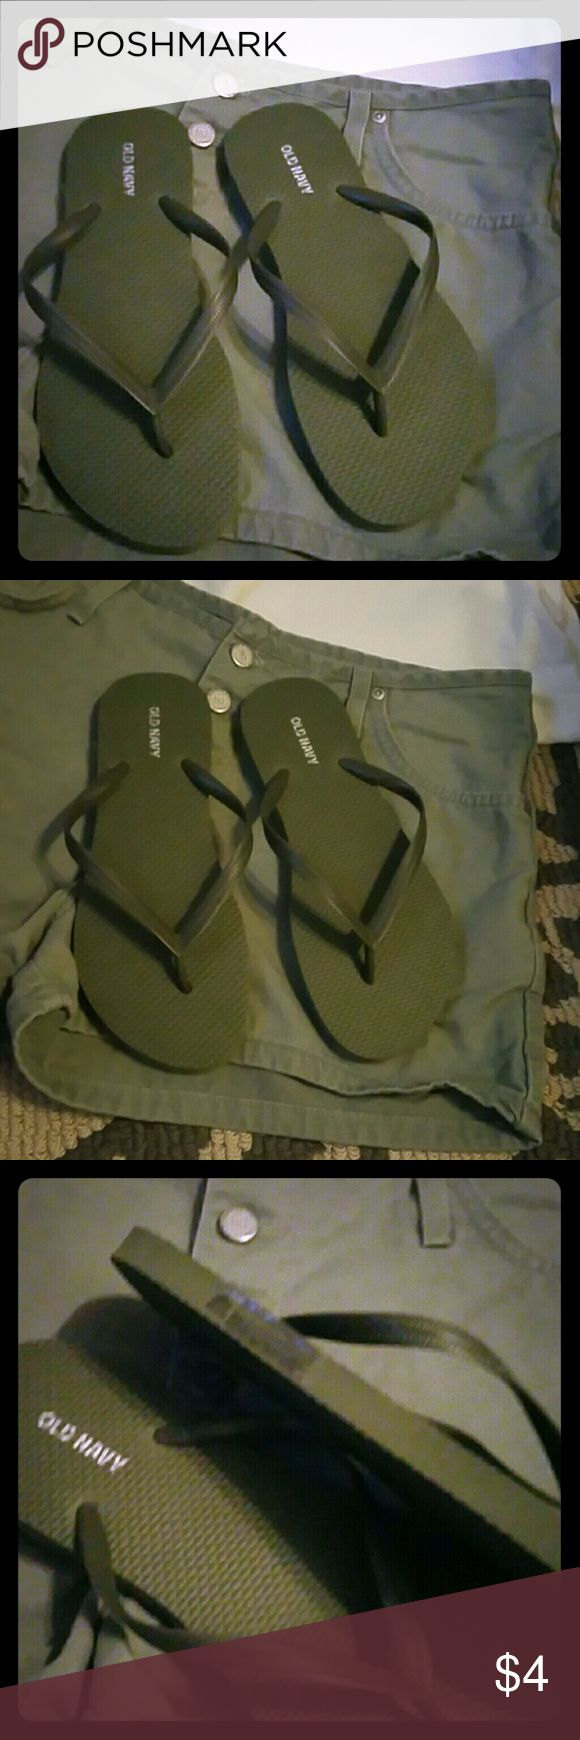 NWT OLD NAVY FLIP FLOPS ARMY GREEN SZ 7M Brand new never worn OLD NAVY Flip Flops free with purchase of the shorts in my listing that match them exactly. Super comfy! Old Navy Shoes Sandals